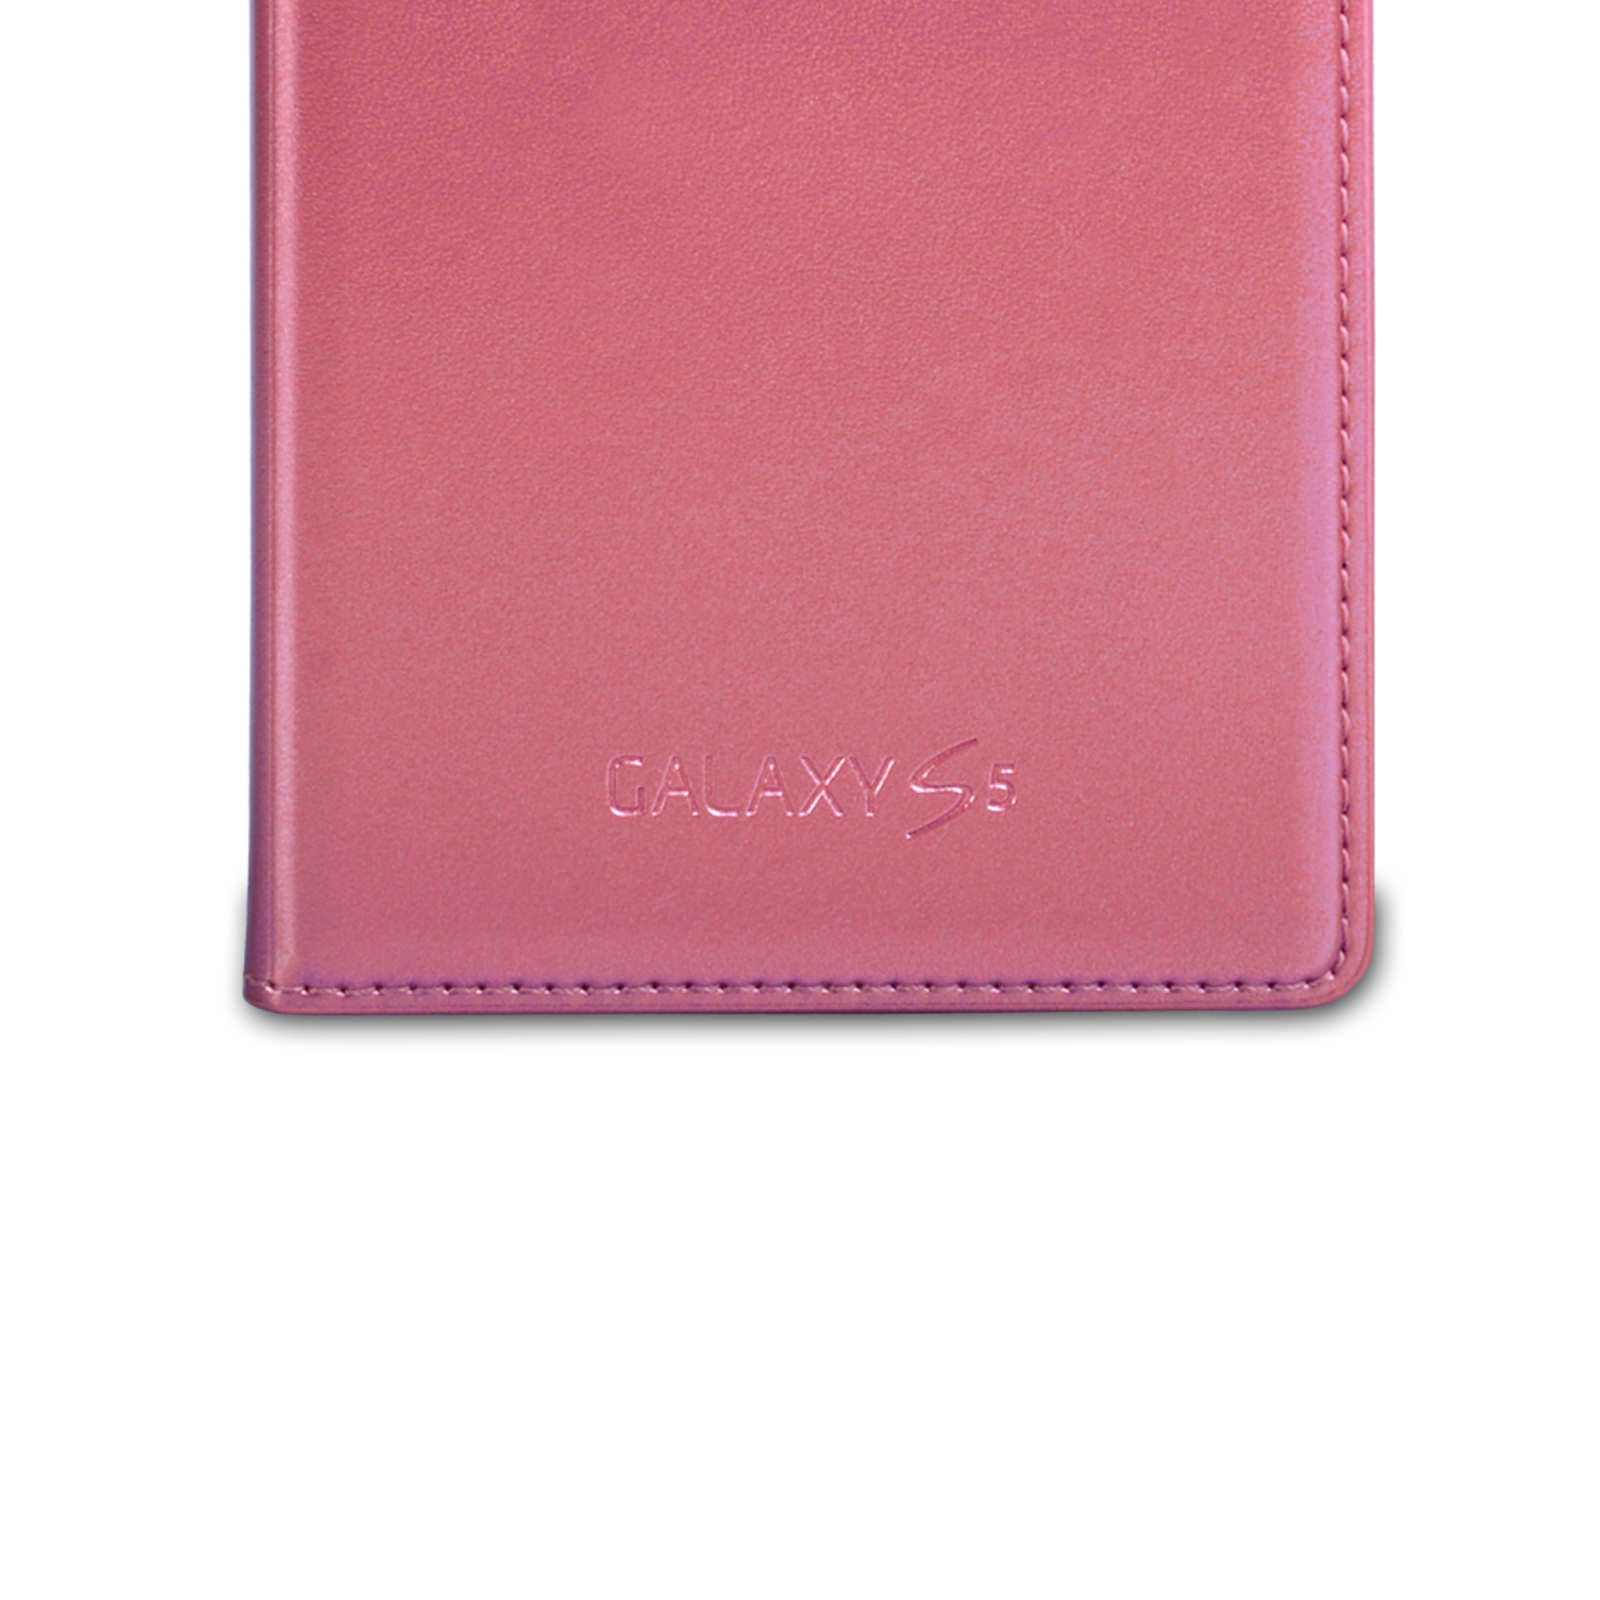 Official Samsung Galaxy S5 S View Cover - Glam Pink